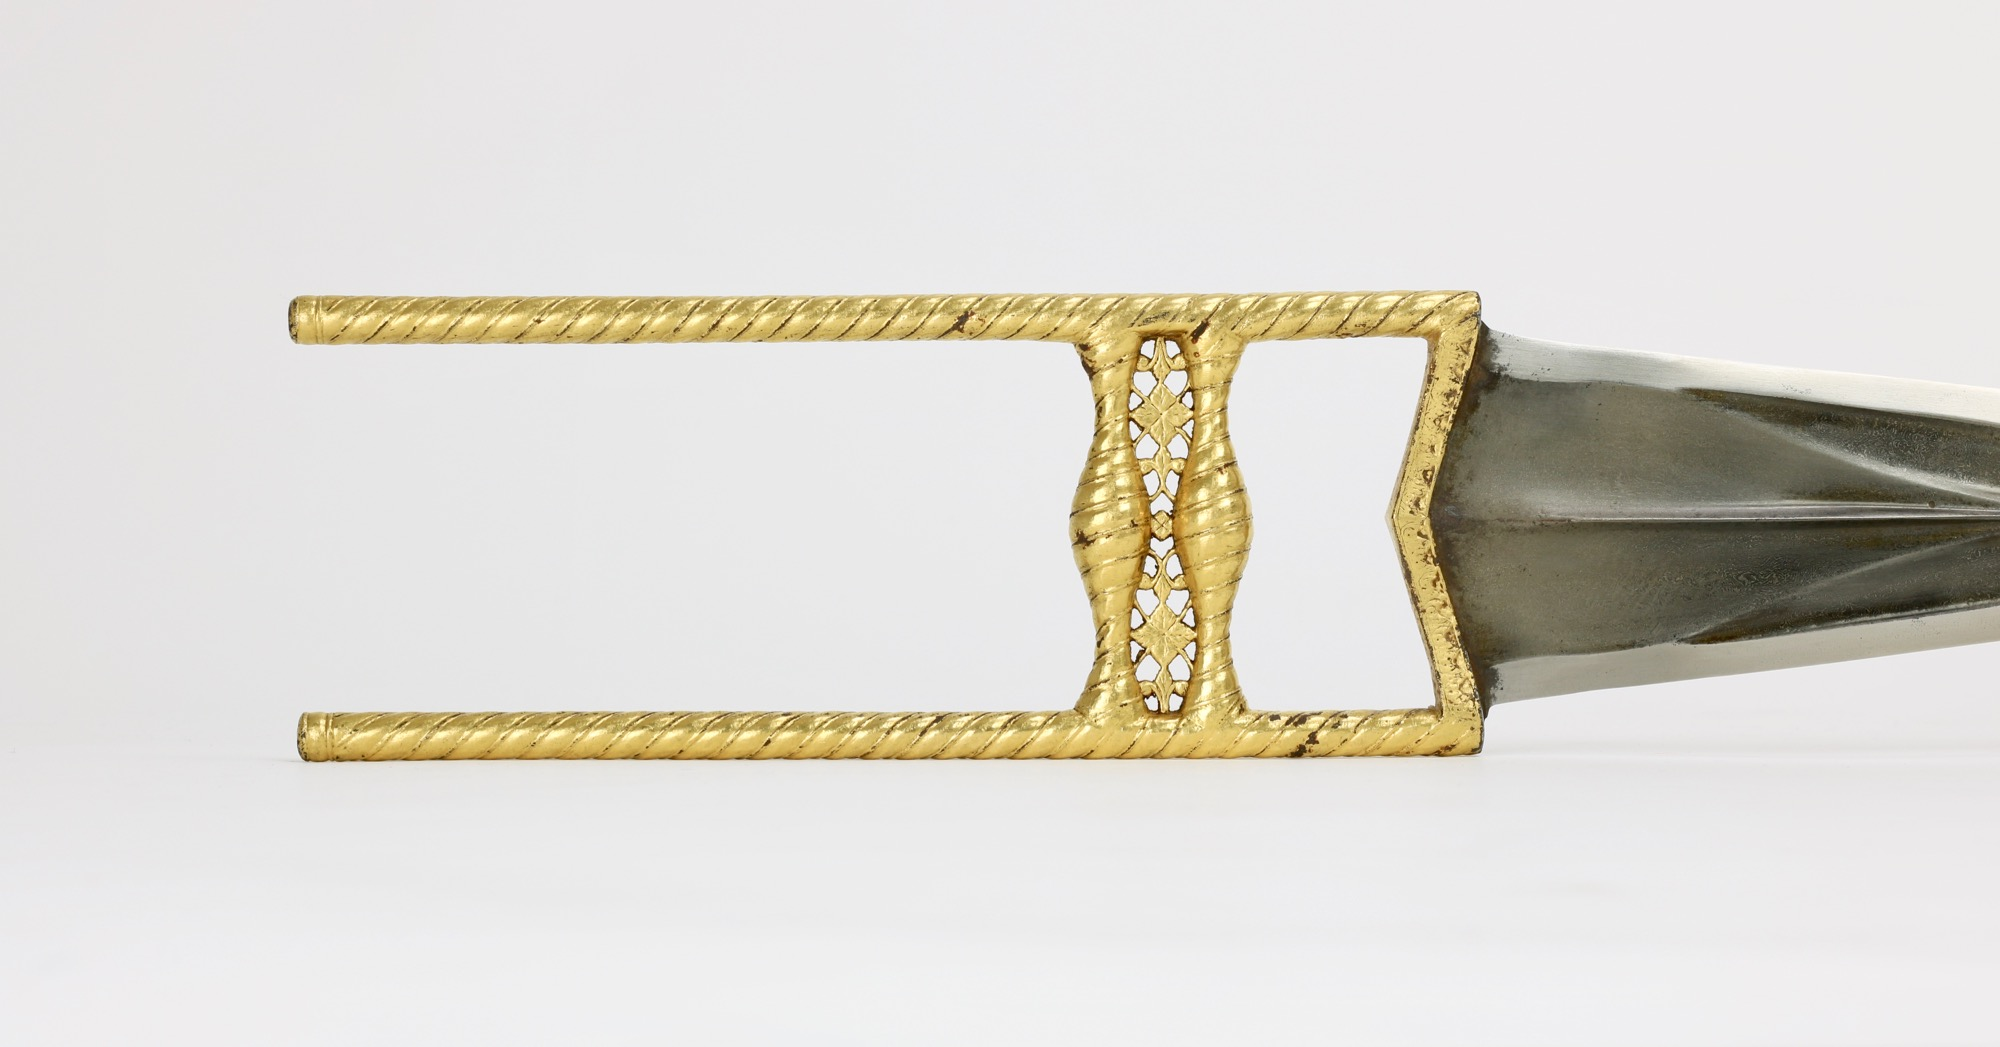 A golden Indian katar with spiral hilt, Bundi style